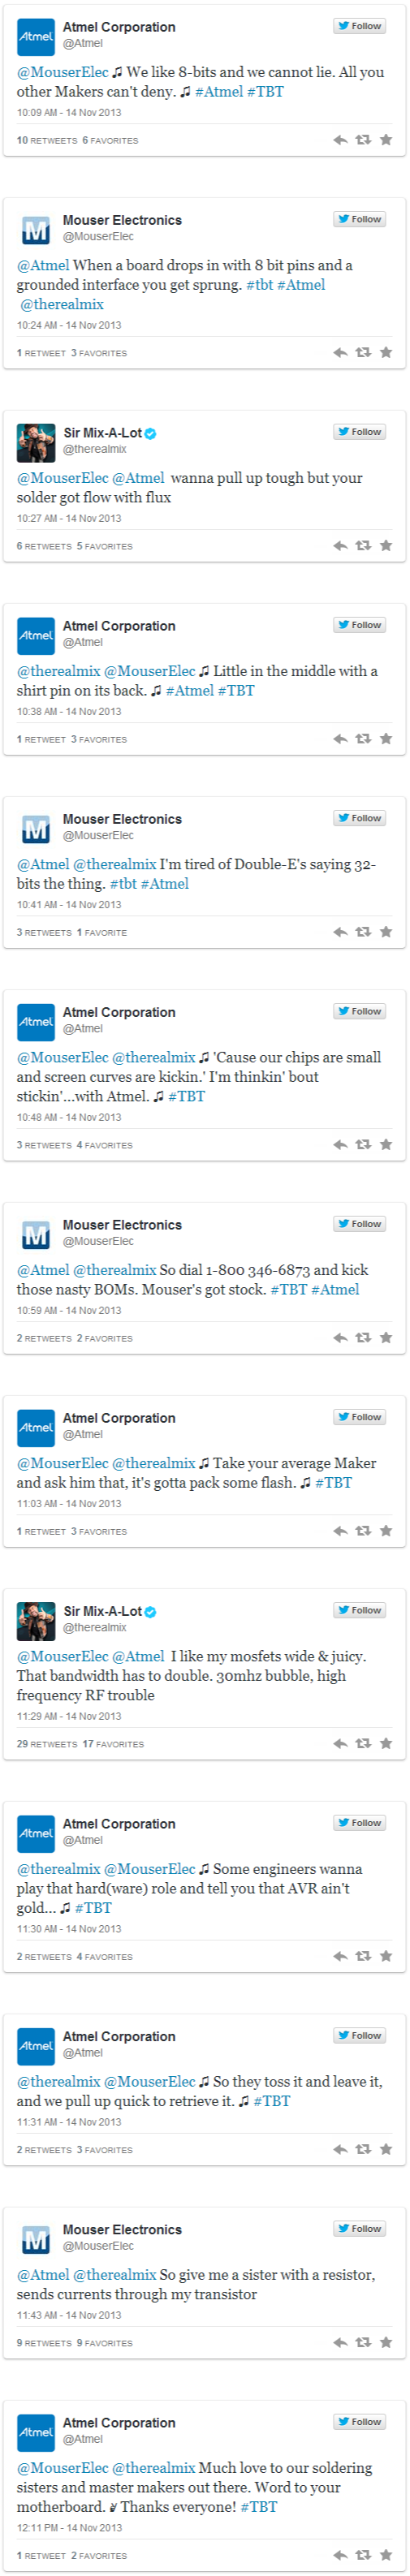 Mouser, Atmel, and Sir Mix-A-Lot  A Twitter Rap about Electrical Engineering (1)